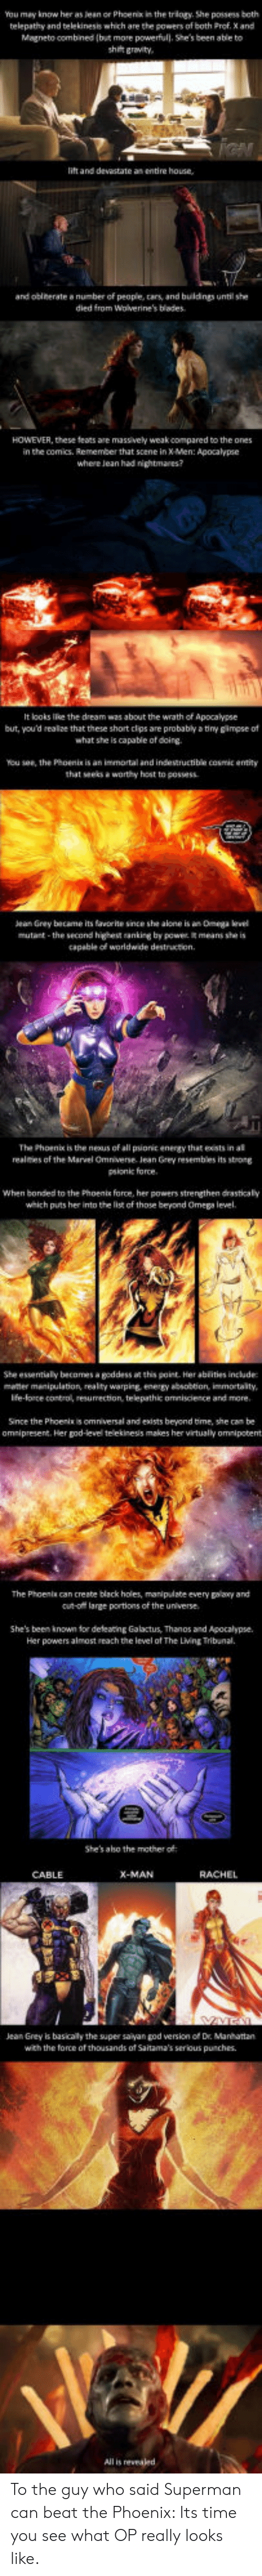 Being Alone, Cars, and Energy: You mey know her as lean or Phoenix in the triogy. She possess beth  telepathy and telekinesis which are the powers of both Prof. X and  Magneto combined (but more powerfull. She's been able to  shi gravity  lift and devastate as entire house  and obinerate a number of people, cars and buldngs until she  died from Wolverine's blades  HOWEVER, these teats are massively weak compared to the ones  in the comics. Remember that scene in X Men: Apocalypse  where lean had nightmares?  It looks lice the dream was about the wrath of Apocalypse  but, you'd realze that these short clps are probably a tiny gimpse of  what she is capable of doing  You see, the Phoenis is an immortal and indestructible cosmic entity  that seeksa worthy host to possess  eaGrey became its fate since she alone is an Omega el  mutant -the second highet anking by powe t means she is  capable of worldwide destruction.  The Phoenik is the neaus of all pionit enengy that eists in al  realnies of the Marvel Omniverse. Jean Grey resembles its strong  psionic force  When bonded to the Phoents force, her powers strengthen drasticaly  which puts her into the list of those beyond Omega level  She essentially becomes a goddess at this point Her ablities include  metter menipulation, realty warping energy absobtion immortality,  Ife-lorce control, resumection, telepathic omniscience and more  Since the Phoenix is omniversal and exists beyond time, she can be  omnipresent. Her god-level telekinesis makes her virtualy omnipotent  The Phoenis can create black holes, manipulate every psany and  cu-oft large portions of the universe  She's been known for deleacing Galactus, Thanos and Apocalypse.  Her powers almost reach the level of The Lving Tribunal.  She's aho the mother of  CABLE  ean Grey is basicaly the super saiyan god version of Dr. Manhattan  with the force of thousands of Saitama's serious punches.  All is revealed To the guy who said Superman can beat the Phoenix: Its time y